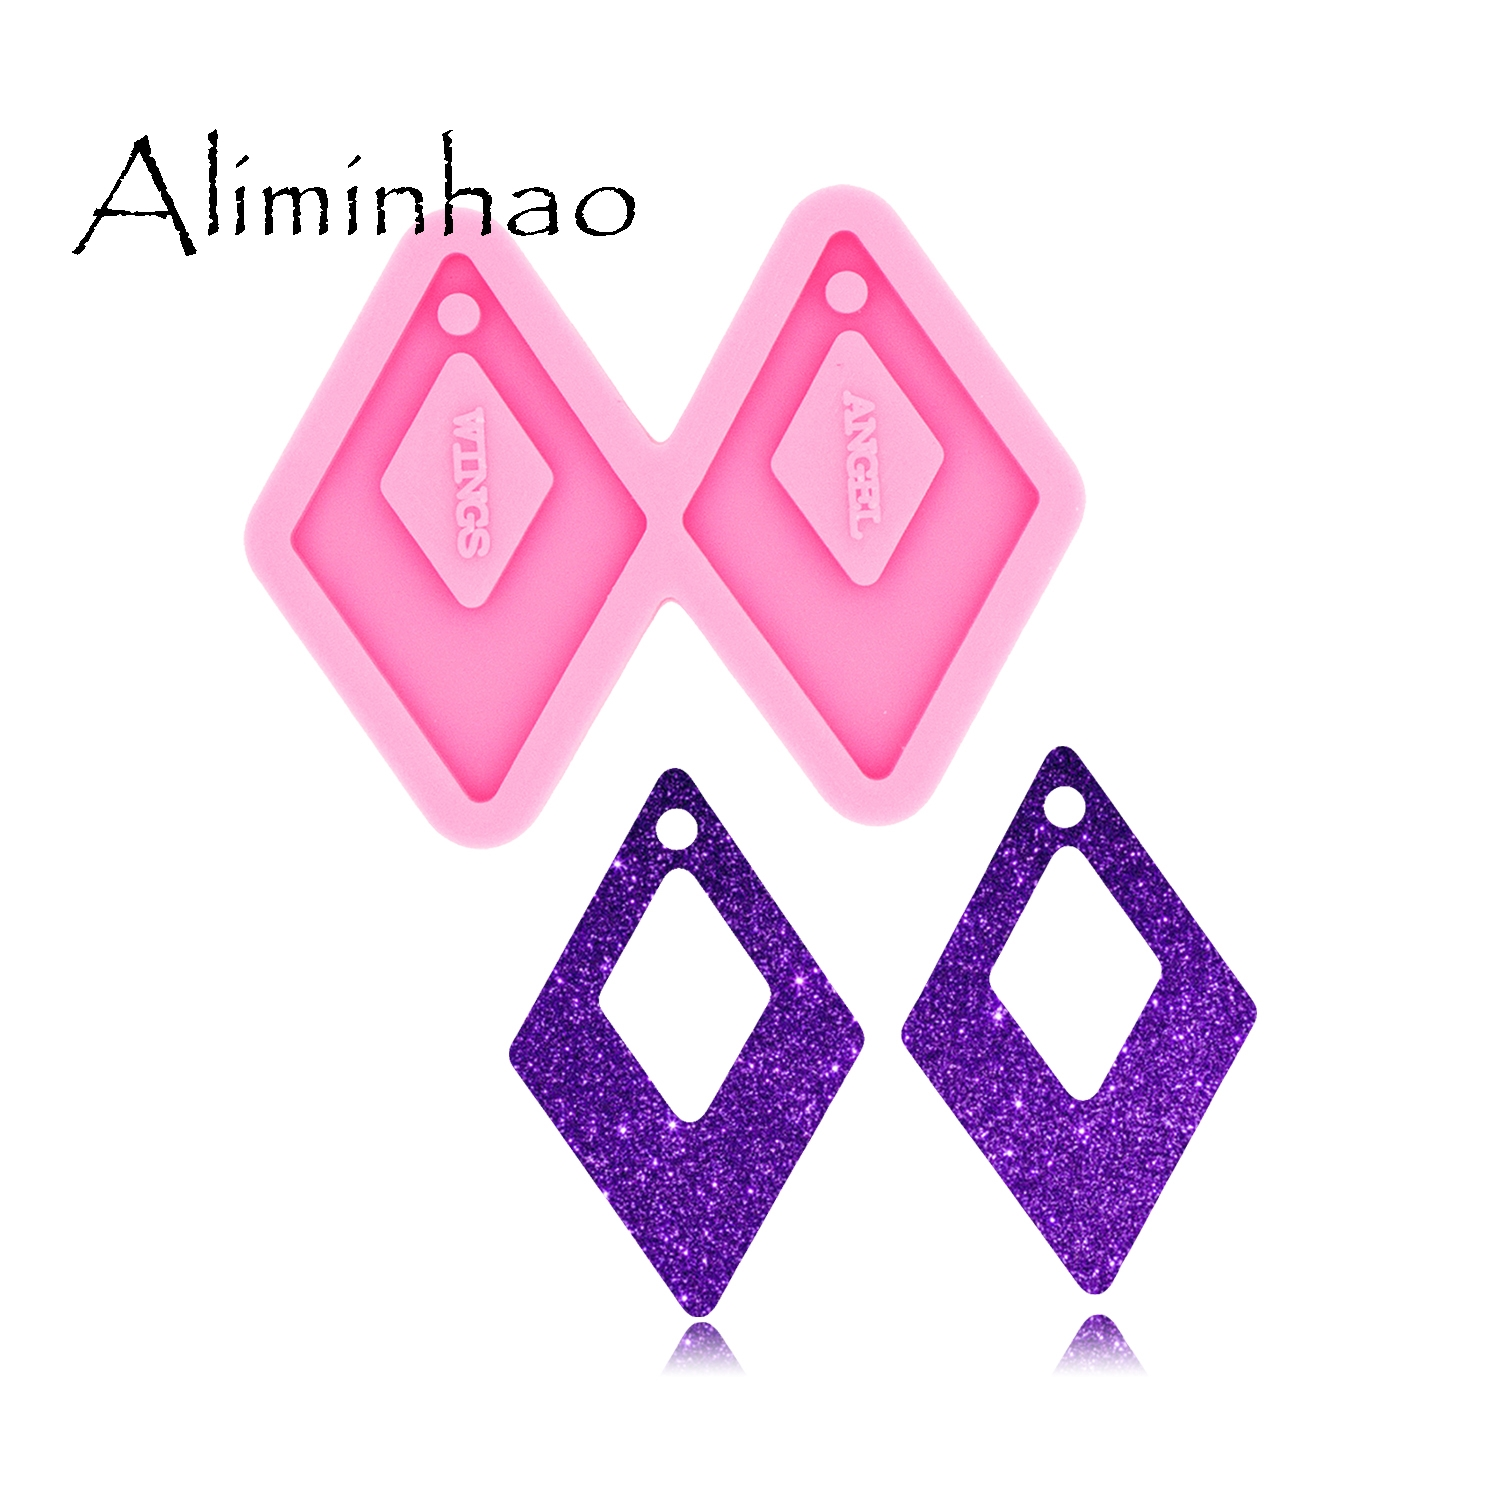 DY0508 L/M/S Shiny Square Shape DIY Epoxy Earrings Fashion Jewelry Resin Craft Mould Silicone Molds